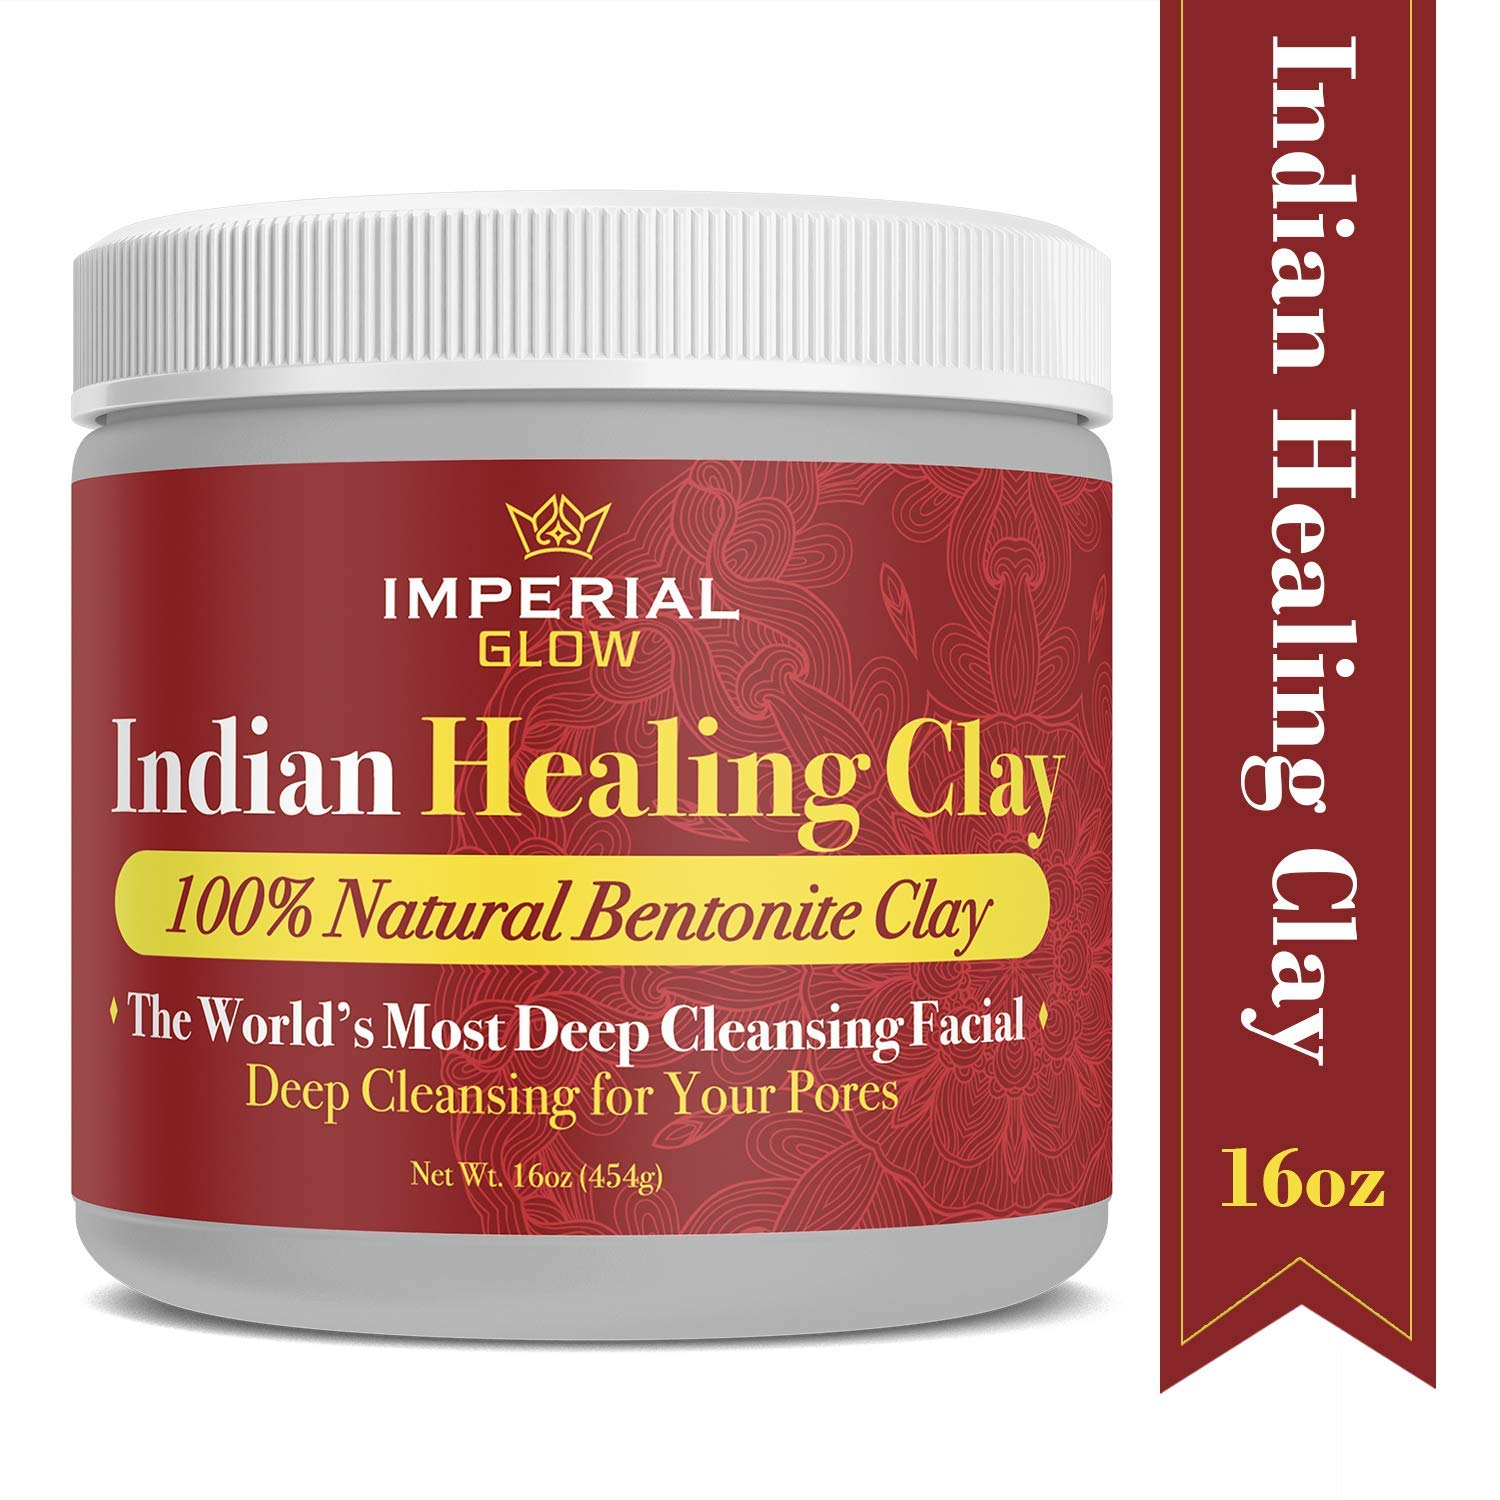 Indian Healing Clay 1 Lb, Deep Pore Cleansing Face and Body Mask, Calcium Bentonite Clay Powder, Therapeutic Grade - 100% Natural & Organic Red Clay Detox Mask